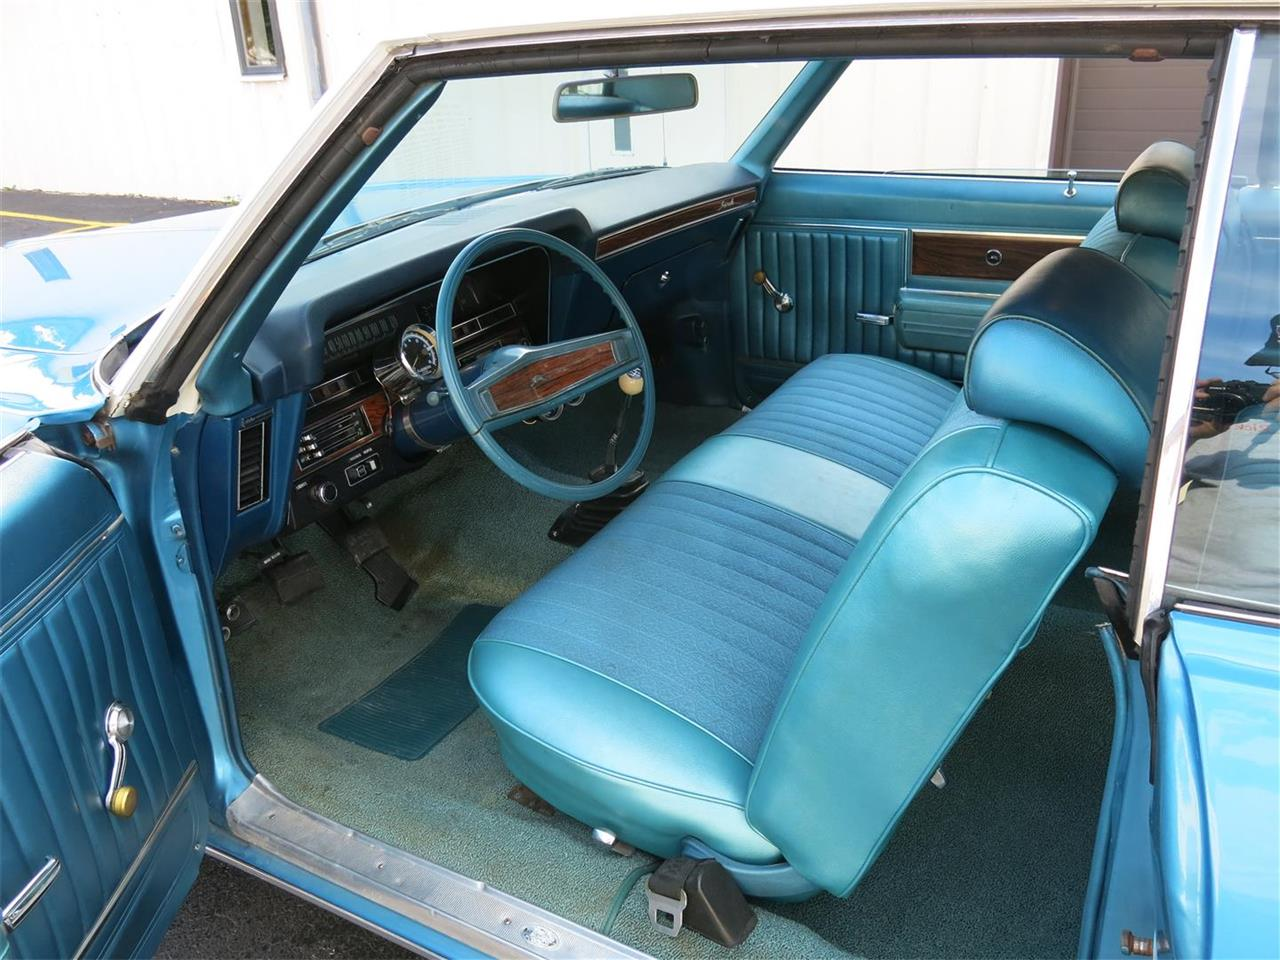 Wondrous 1969 Chevrolet Impala For Sale Classiccars Com Cc 1111582 Gmtry Best Dining Table And Chair Ideas Images Gmtryco